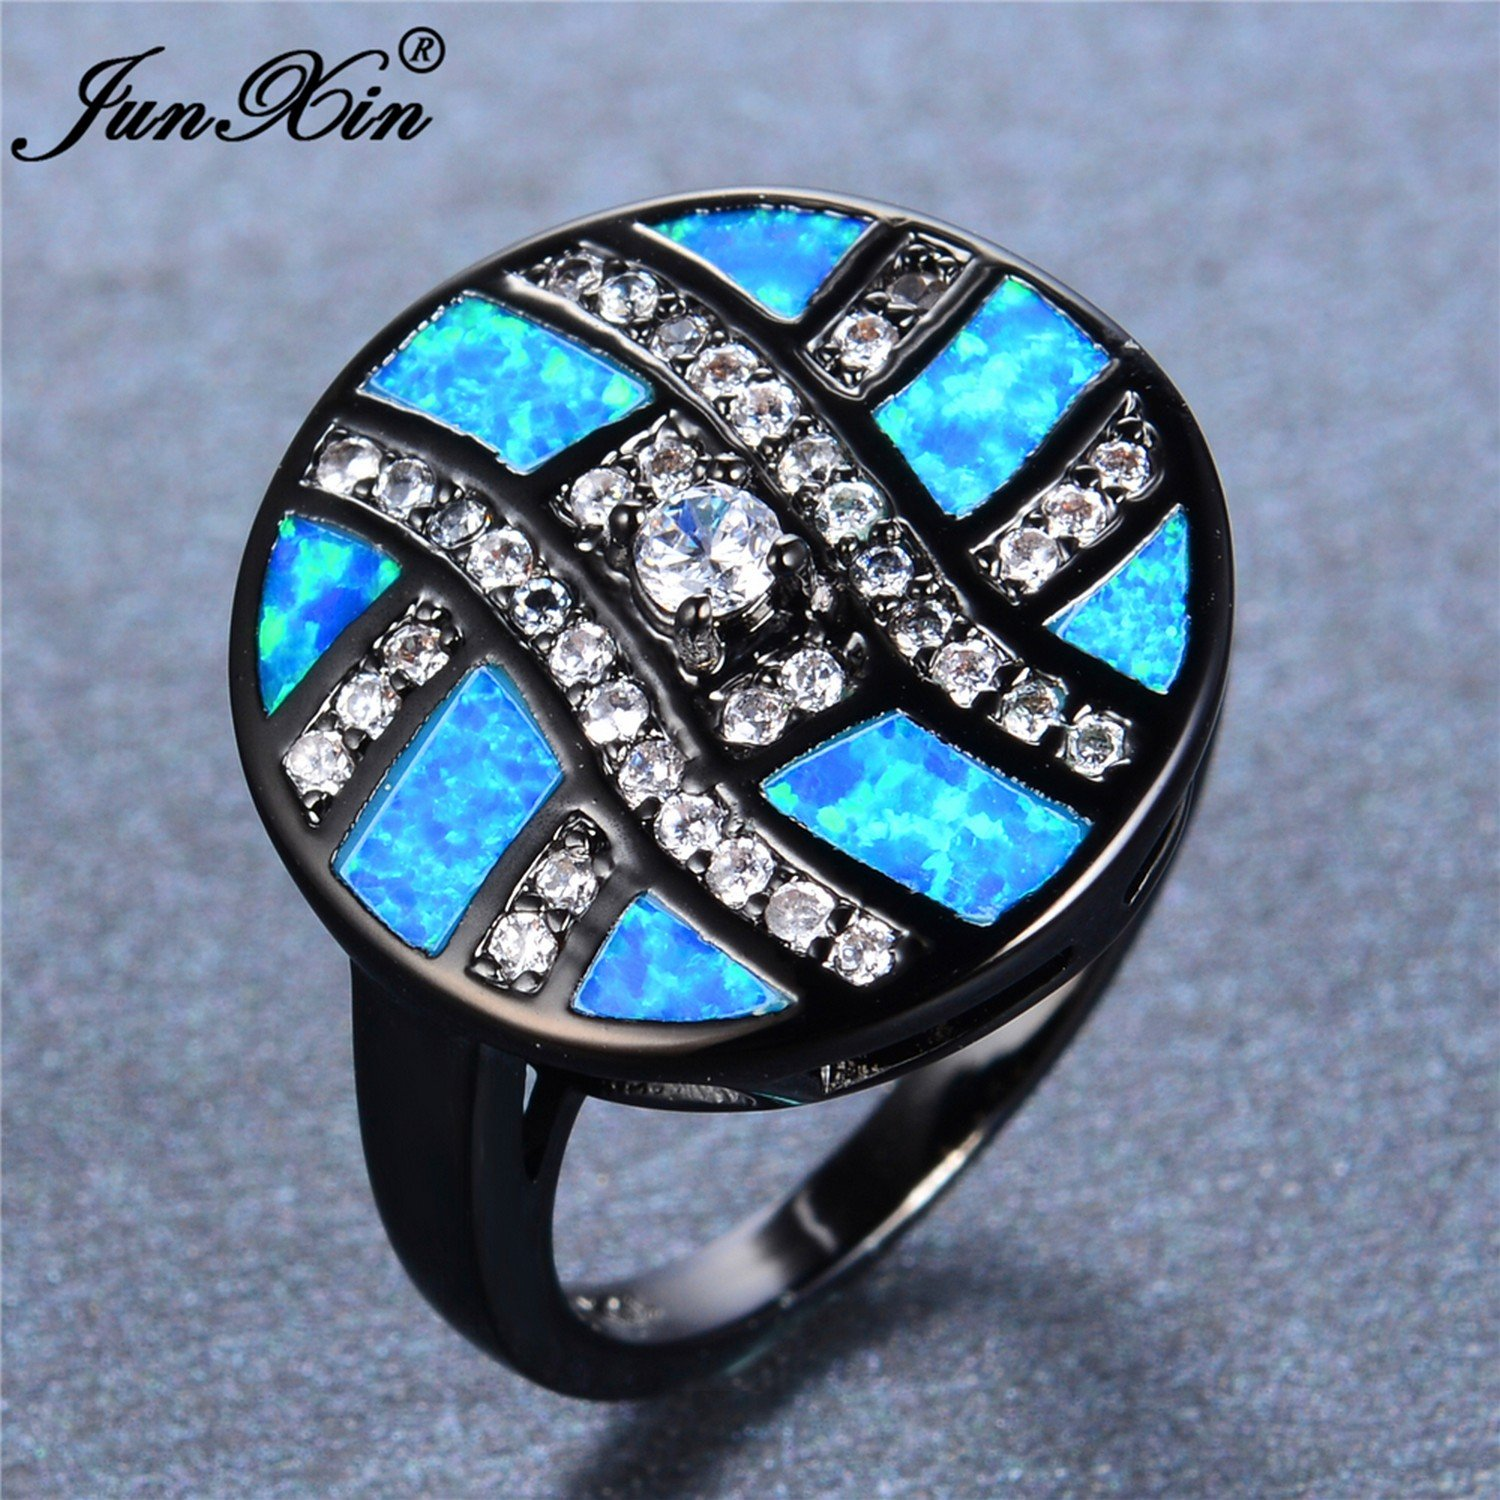 Slyq Jewelry Male Female Round Ring with AAA Zircon bluee Fire Opal Ring Black gold Wedding Rings for Men and Women